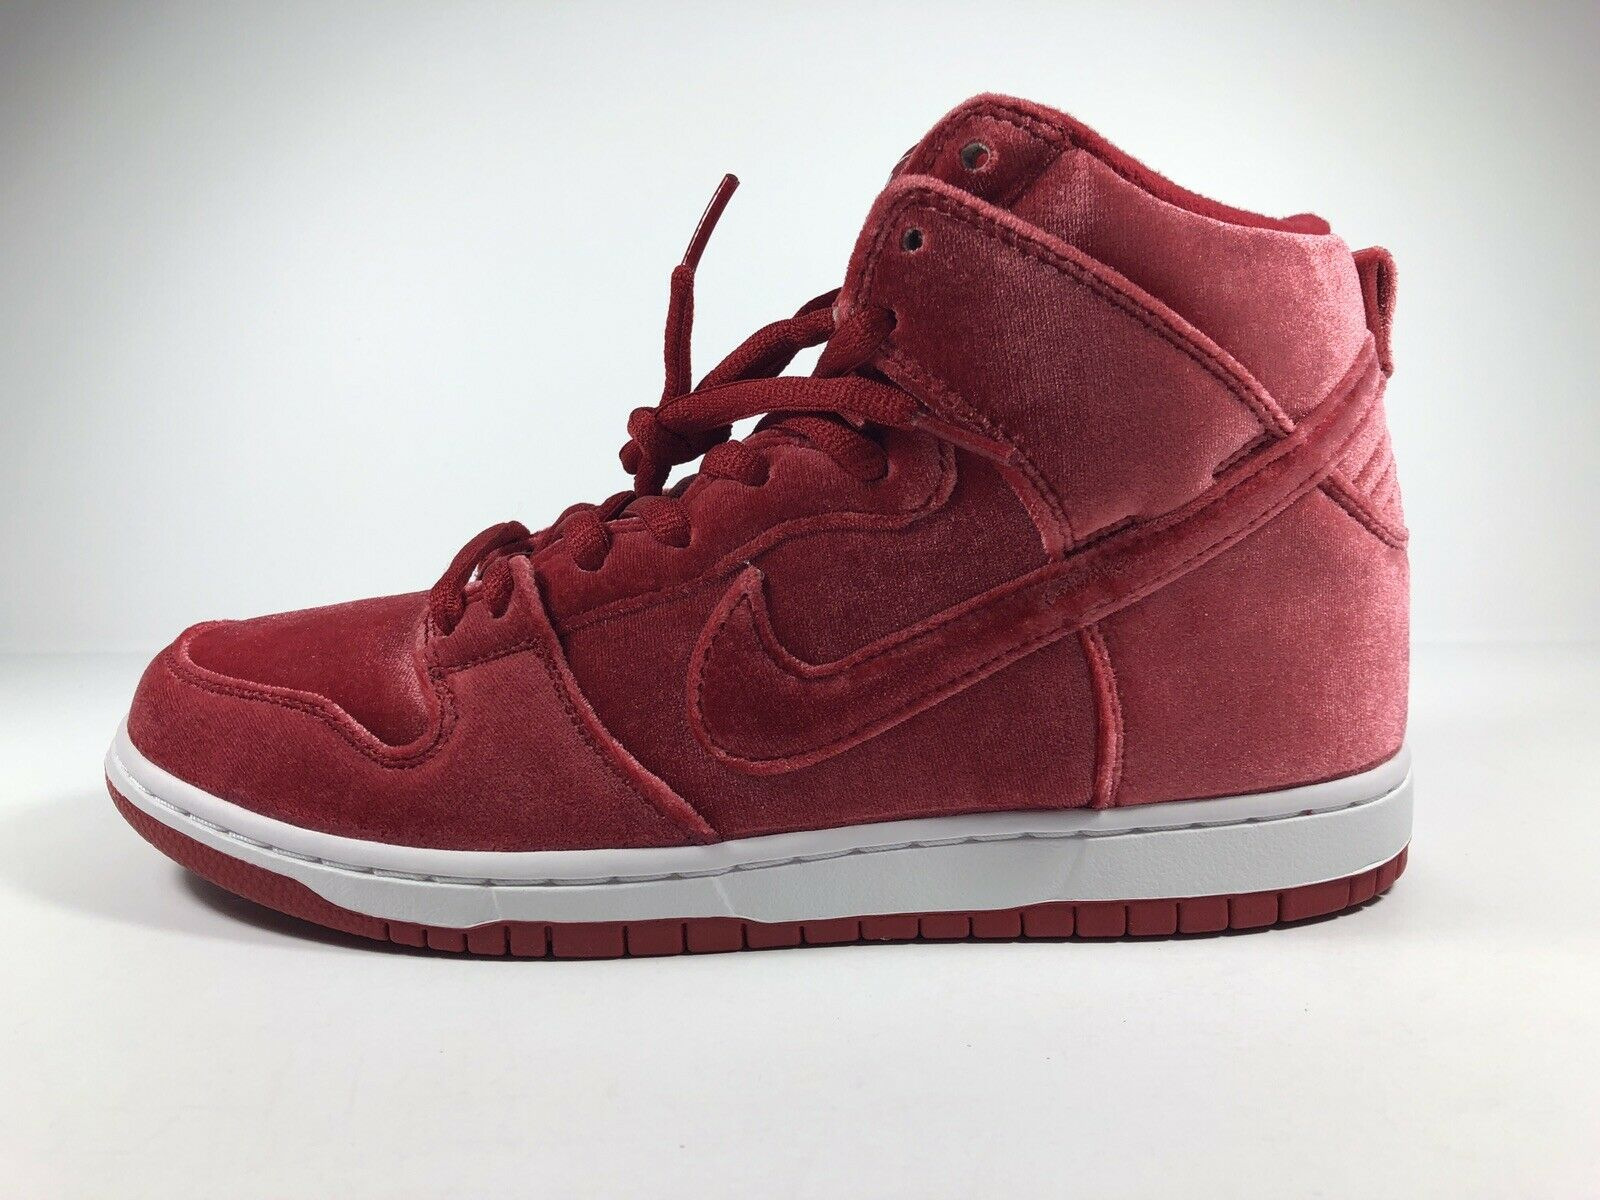 Nike Dunk High Premium SB Gym Red   White Size 9.5 313171 661